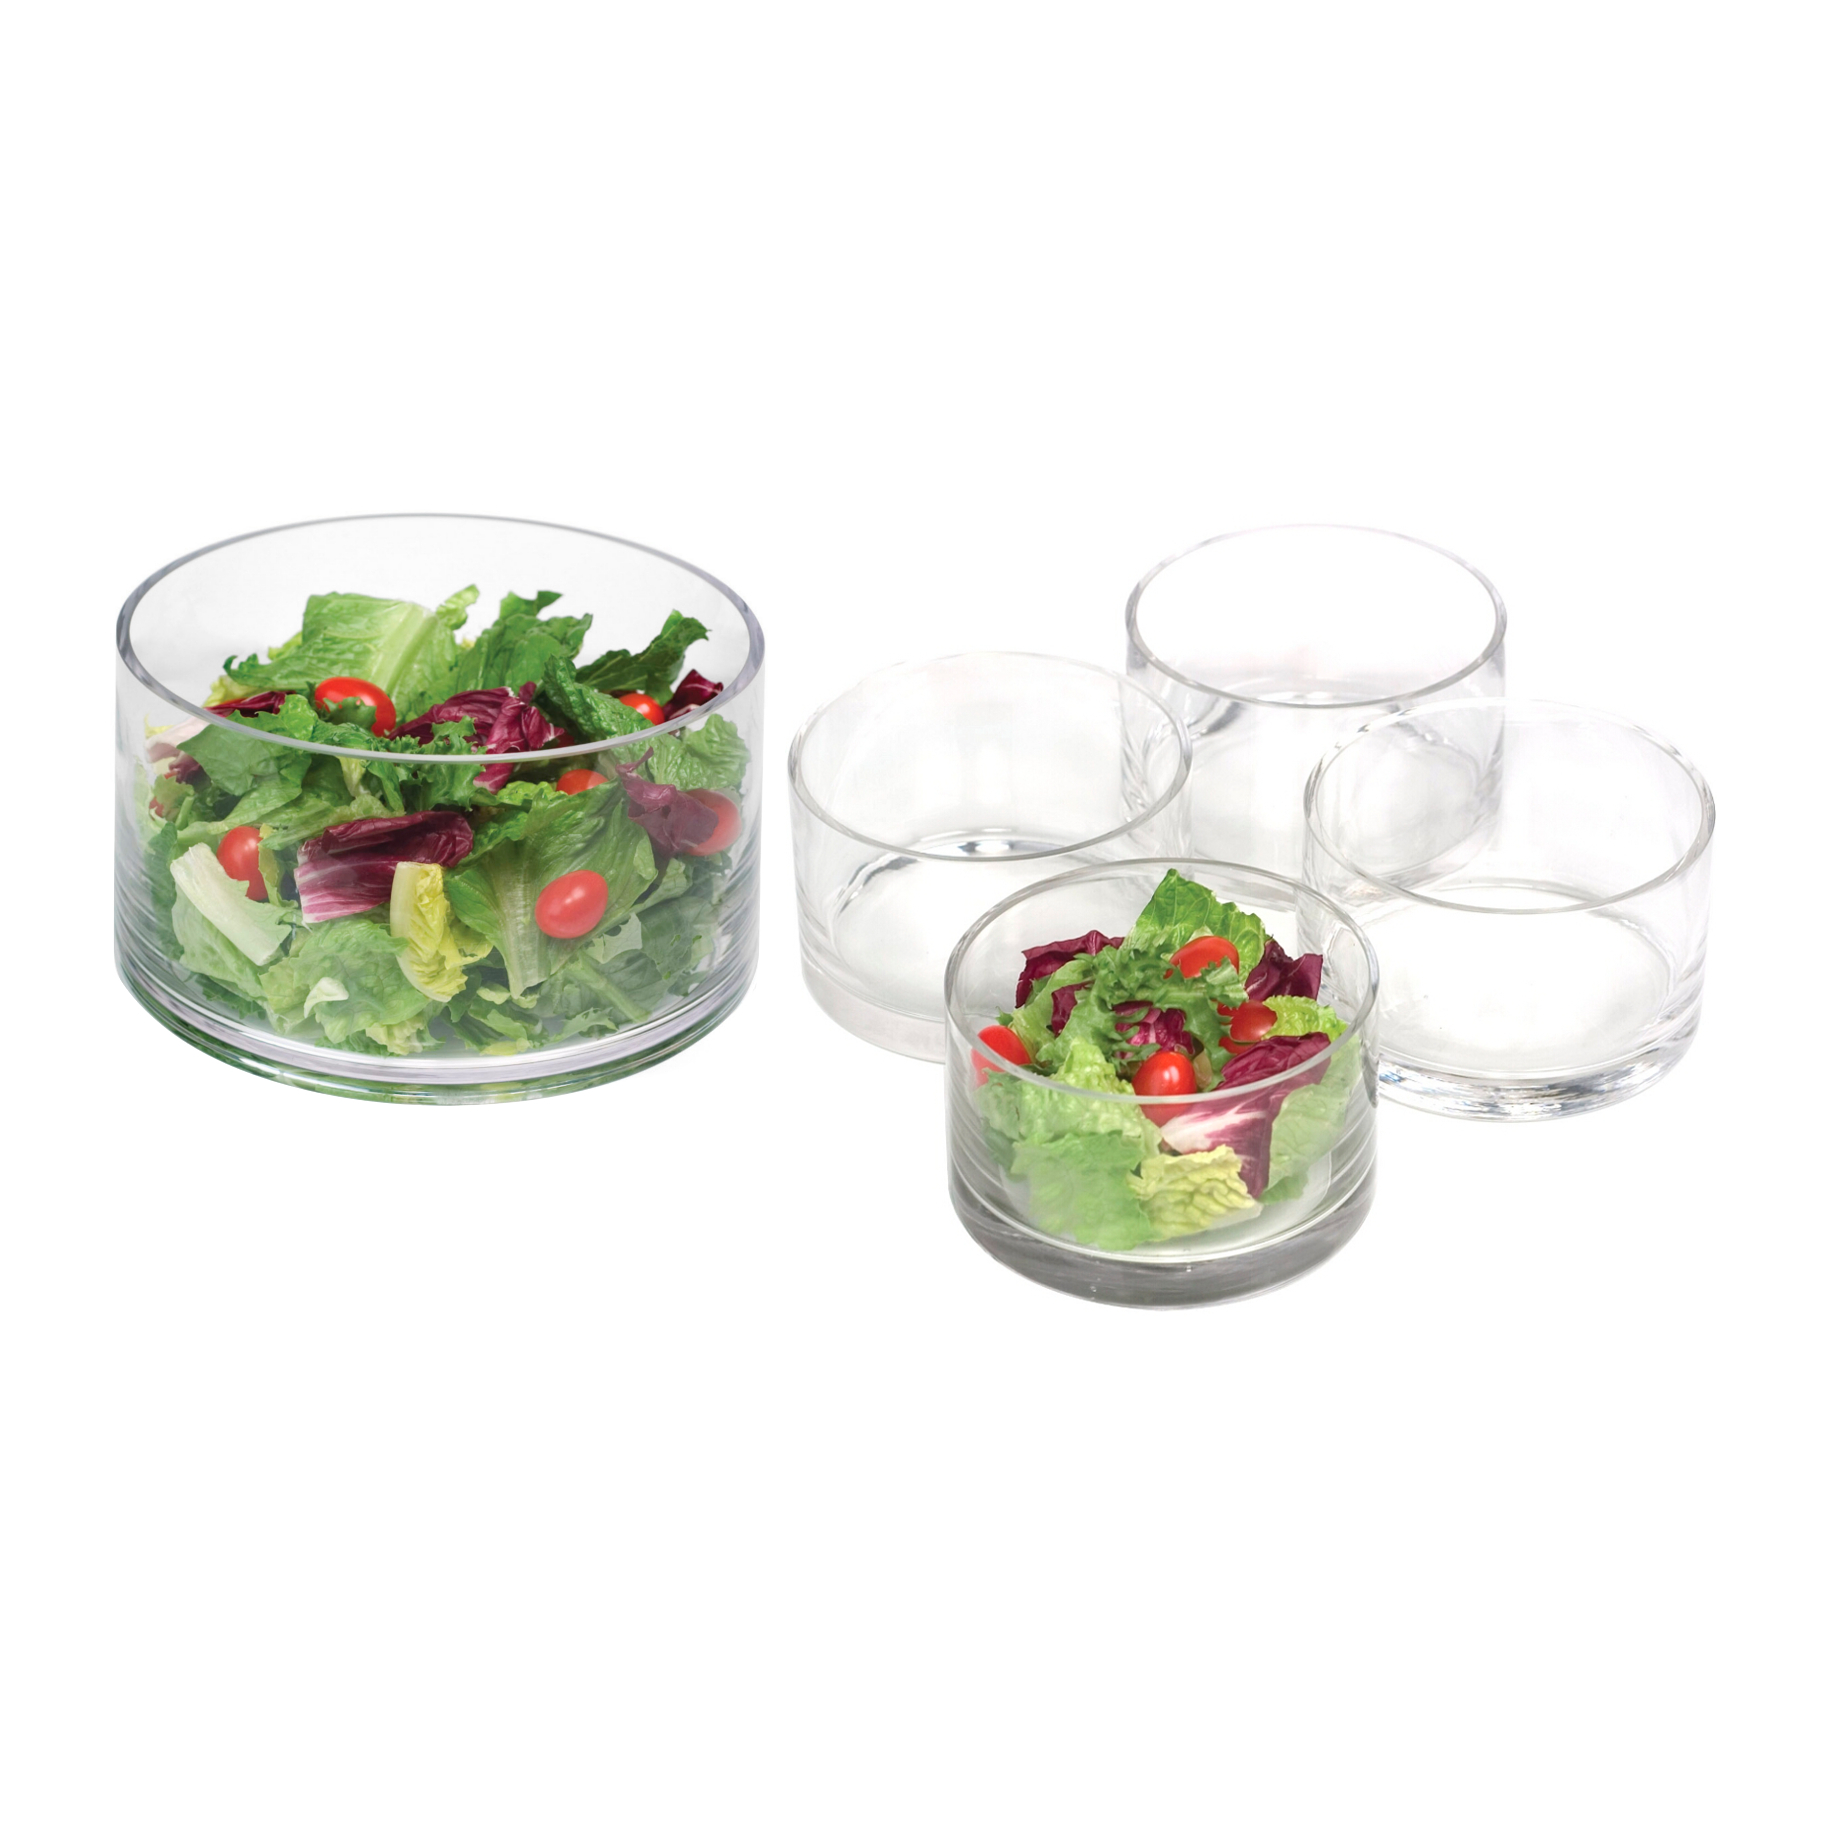 Artland Simplicity Glass Cylinder Salad Serving Bowl 5 Piece Set, Service for 4 by Artland